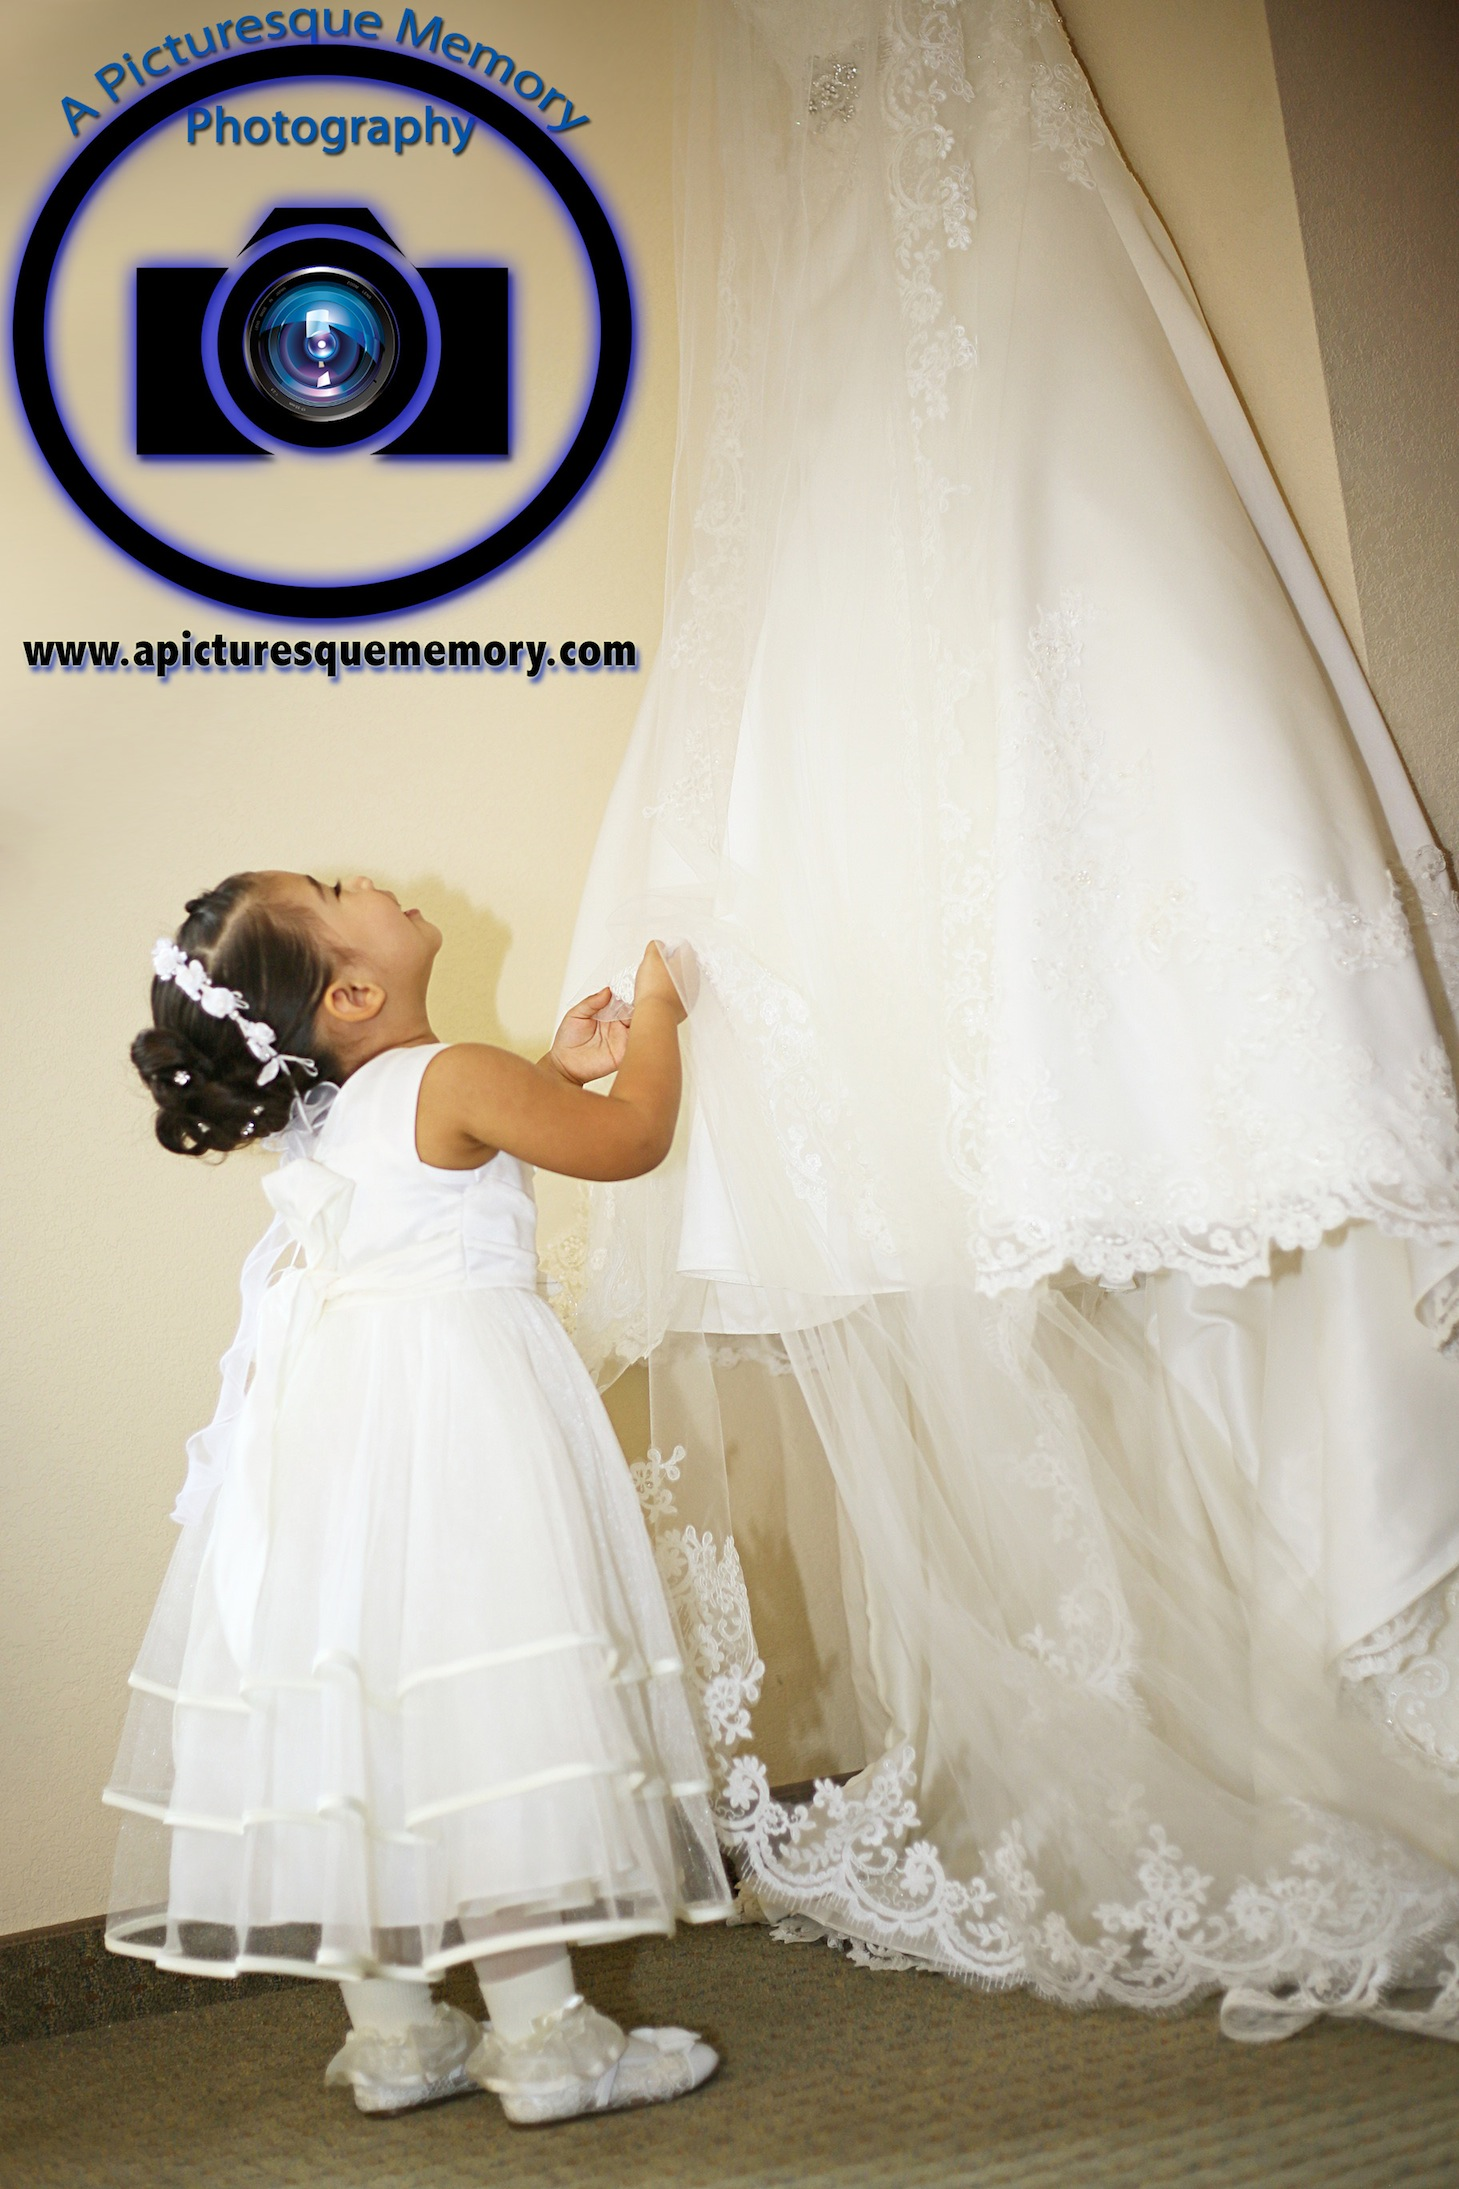 #njwedding, #njweddingphotography, #northbrunswickweddingphotographer#weddingphotos, #apicturesquememoryphotography, #staybridgesuitesweddingphotographer, #bridesdress, #flowergirl